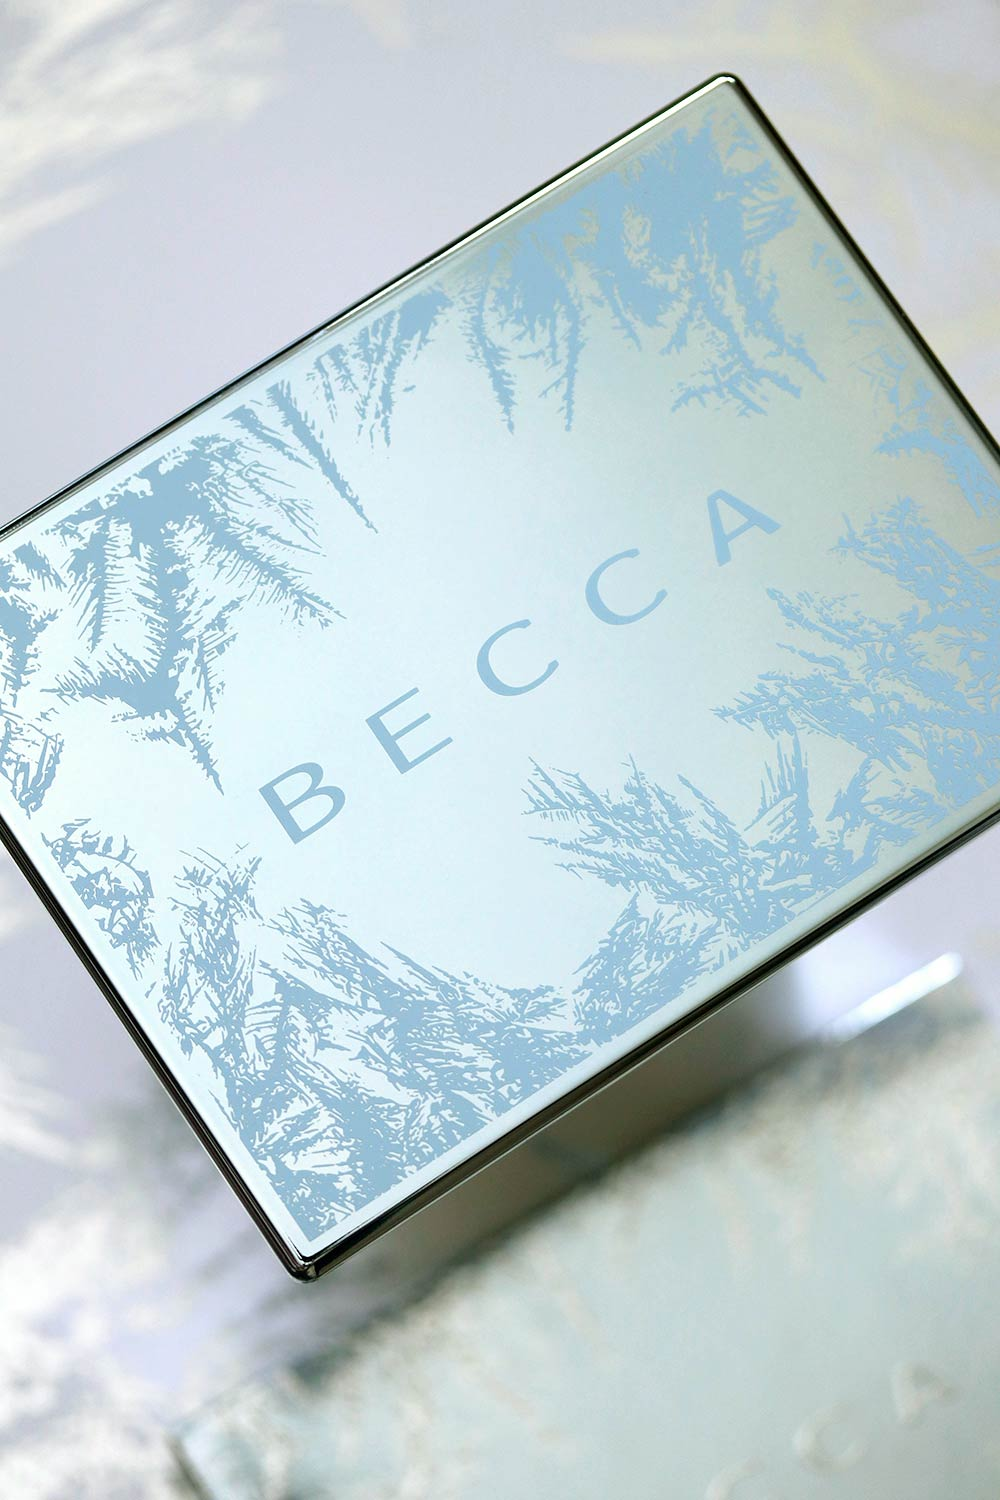 becca apres ski glow face palette packaging